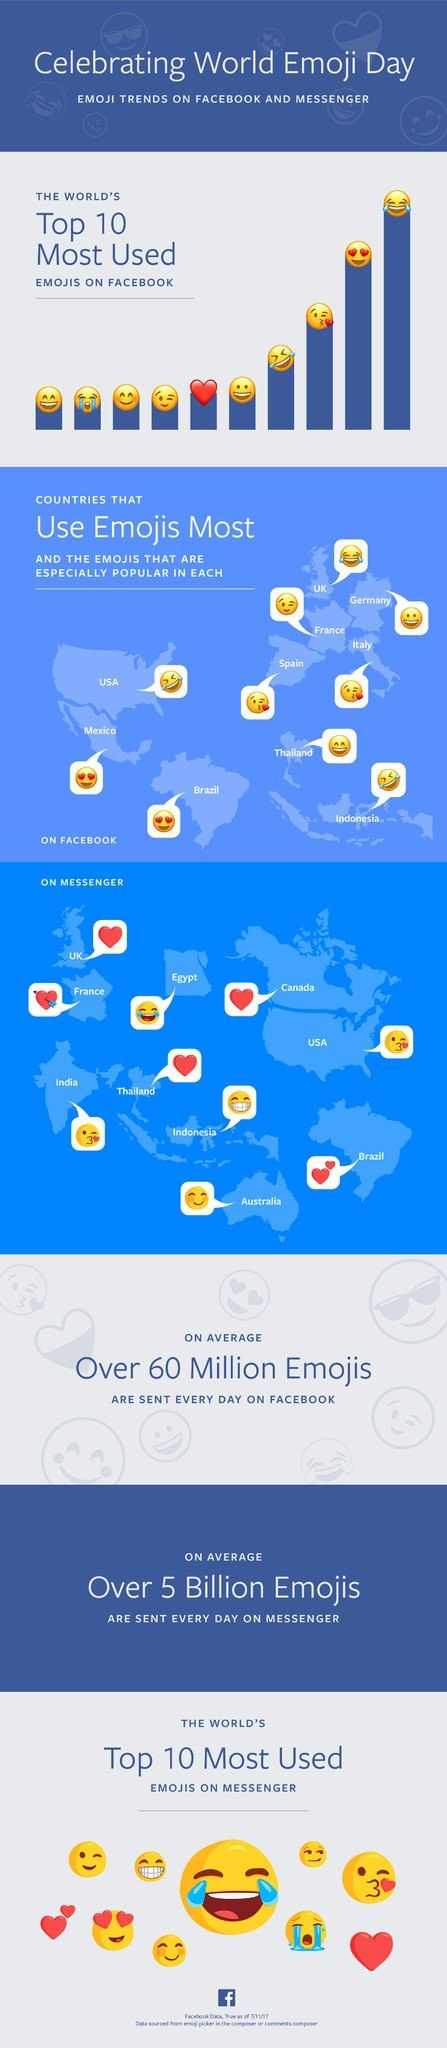 6 Mind-Blowing Emoji Facts in Honor of World Emoji Day | Glamour